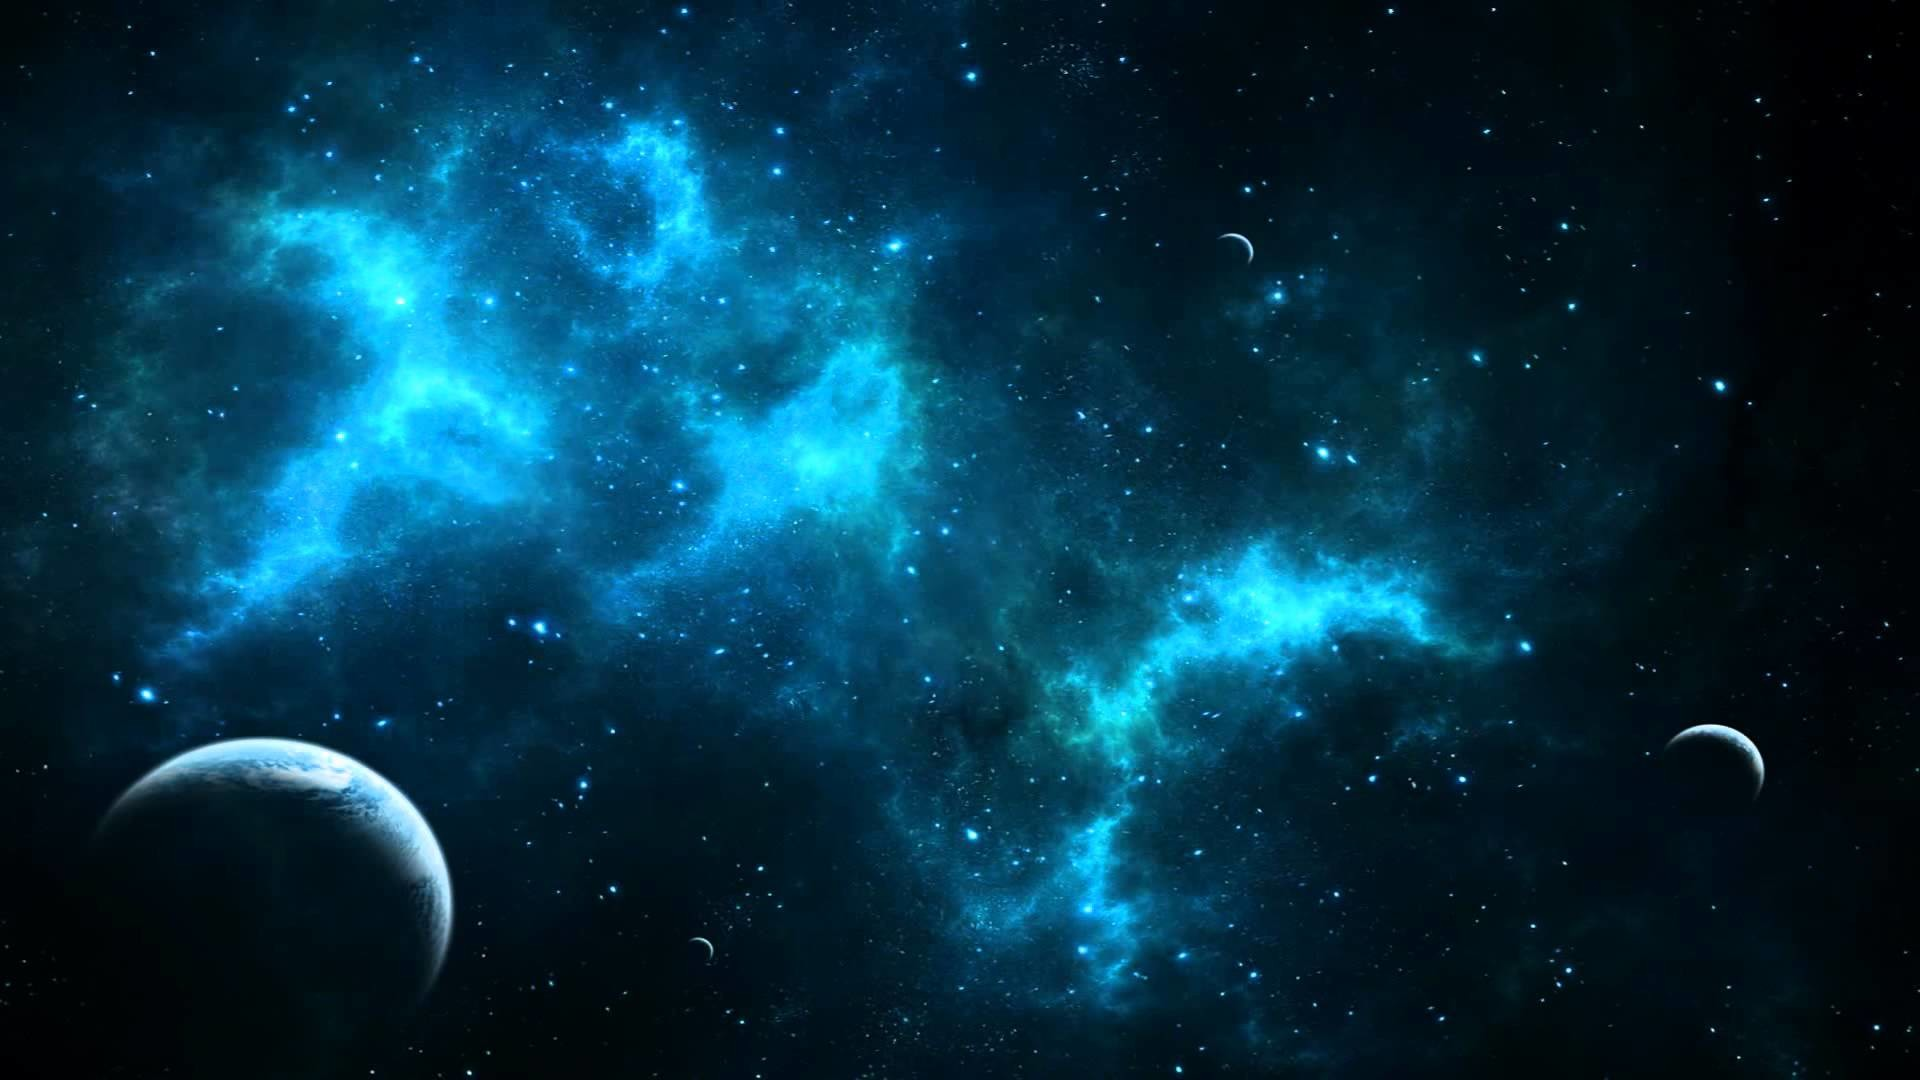 1920x1080 - Space Wallpaper and Screensavers 37